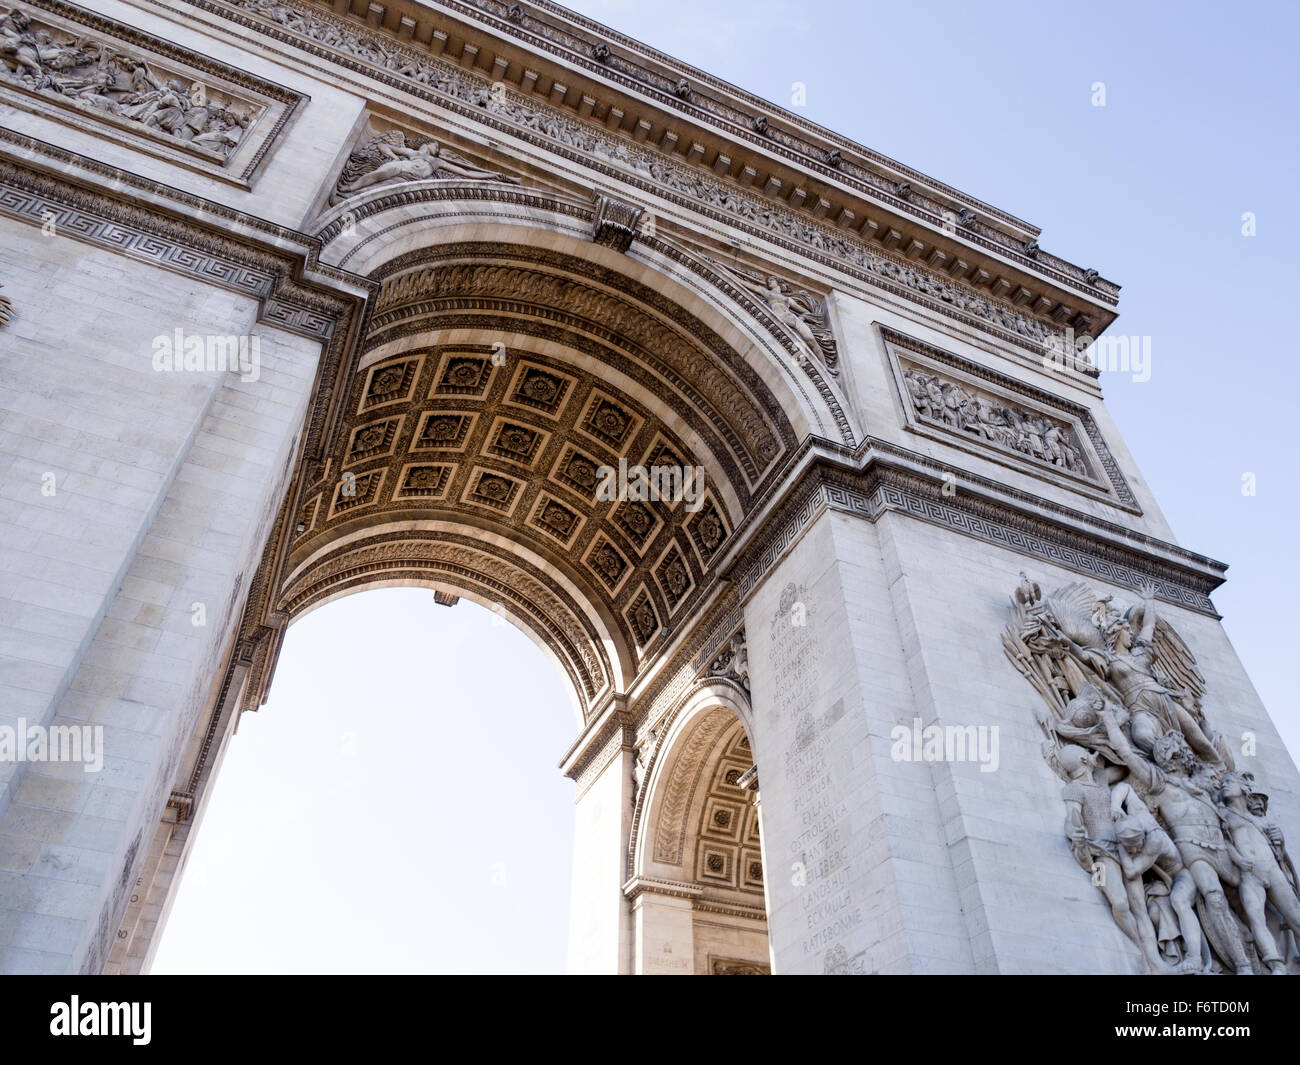 The Arc de Triomphe from below. The view from the traffic island below the great arch. - Stock Image